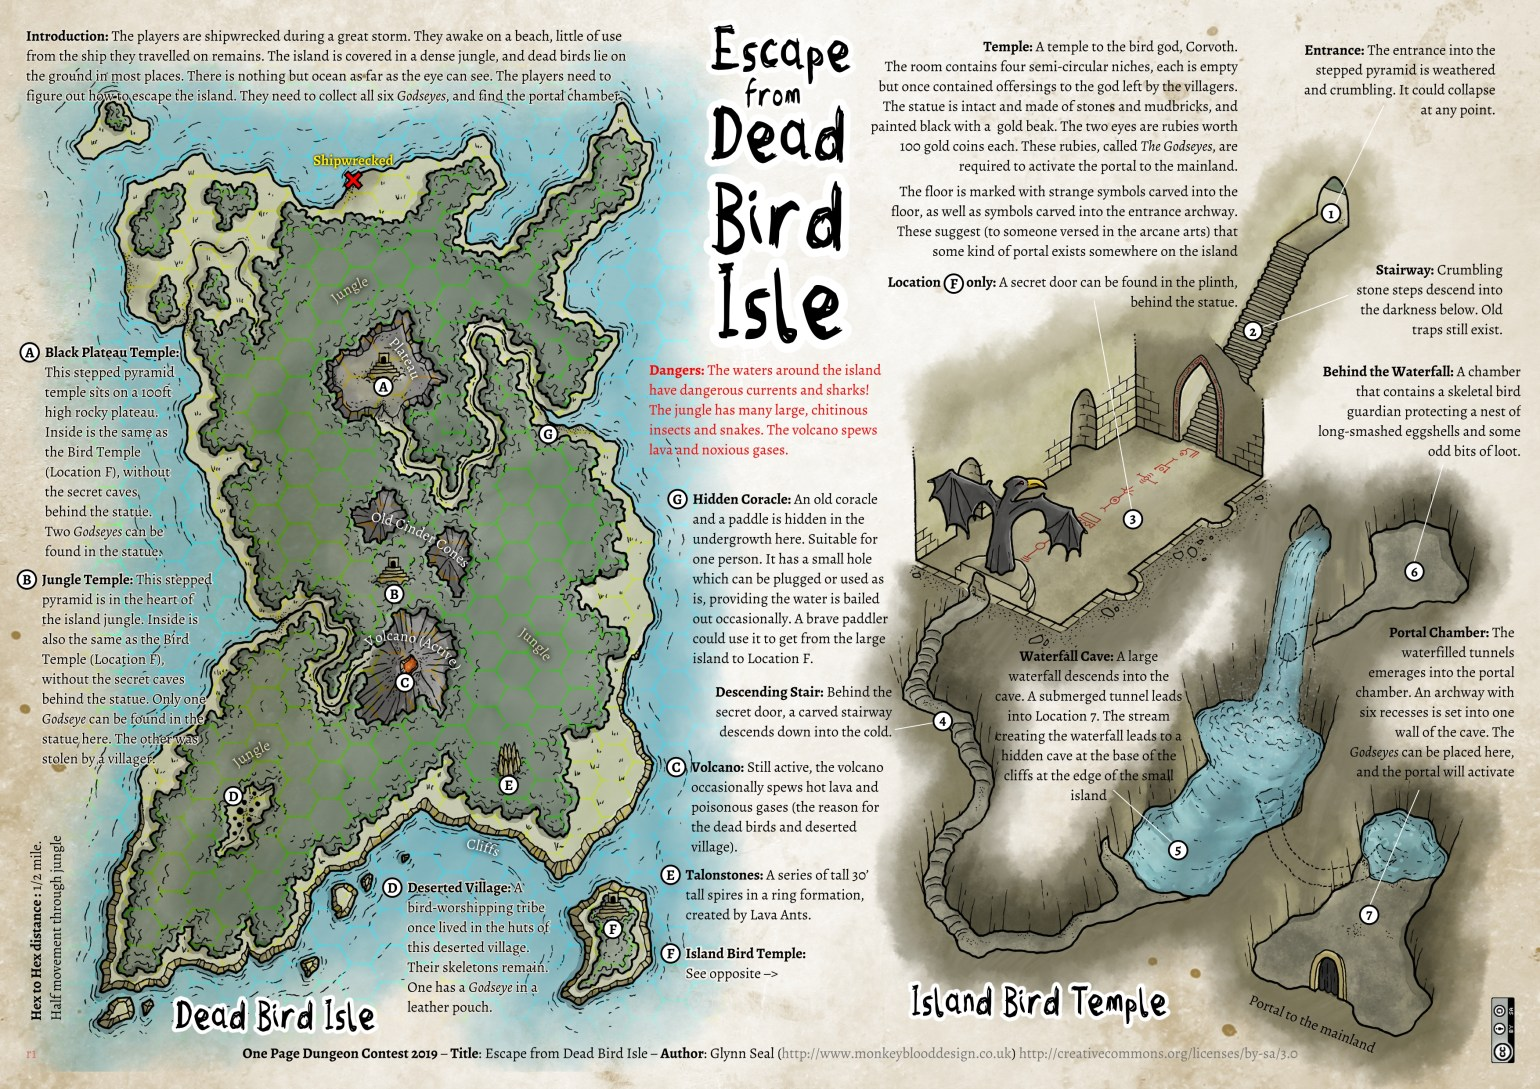 Escape from Dead Bird Isle r1.jpg